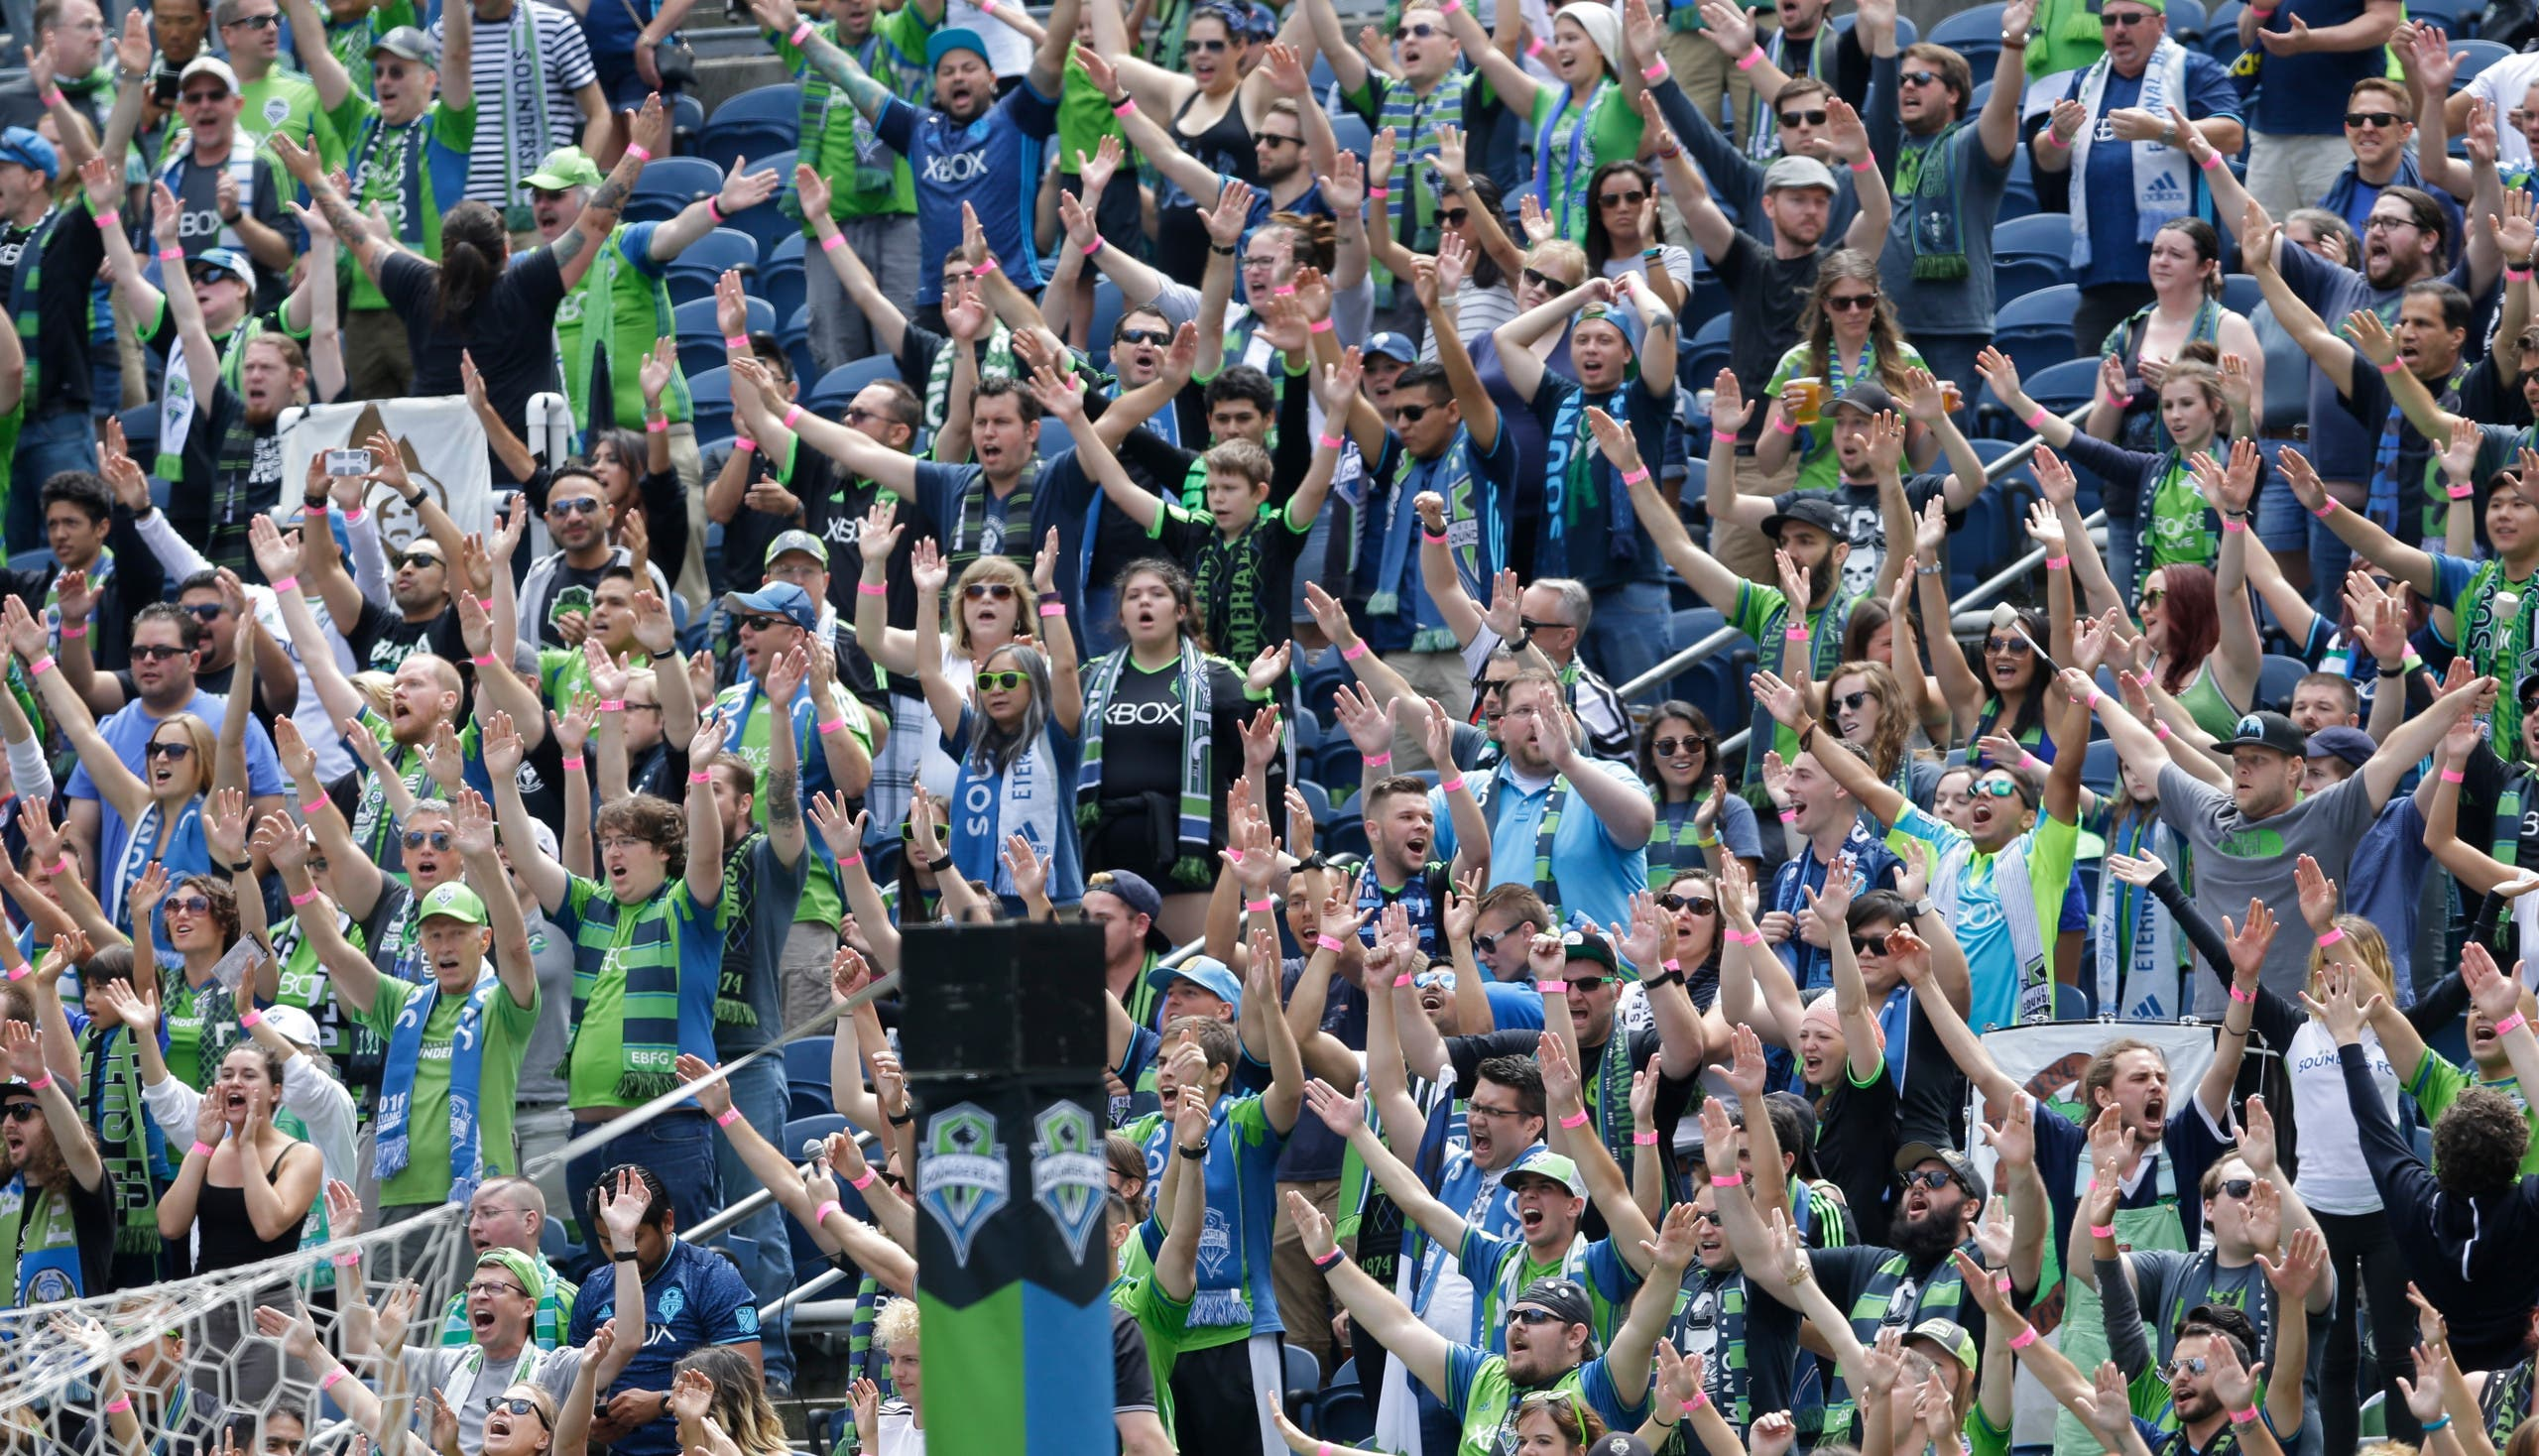 Members of the Emerald City Supporters and and other fans cheer at the start of an MLS soccer match against the Los Angeles Galaxy, Sunday, July 31, 2016, in Seattle. (AP)